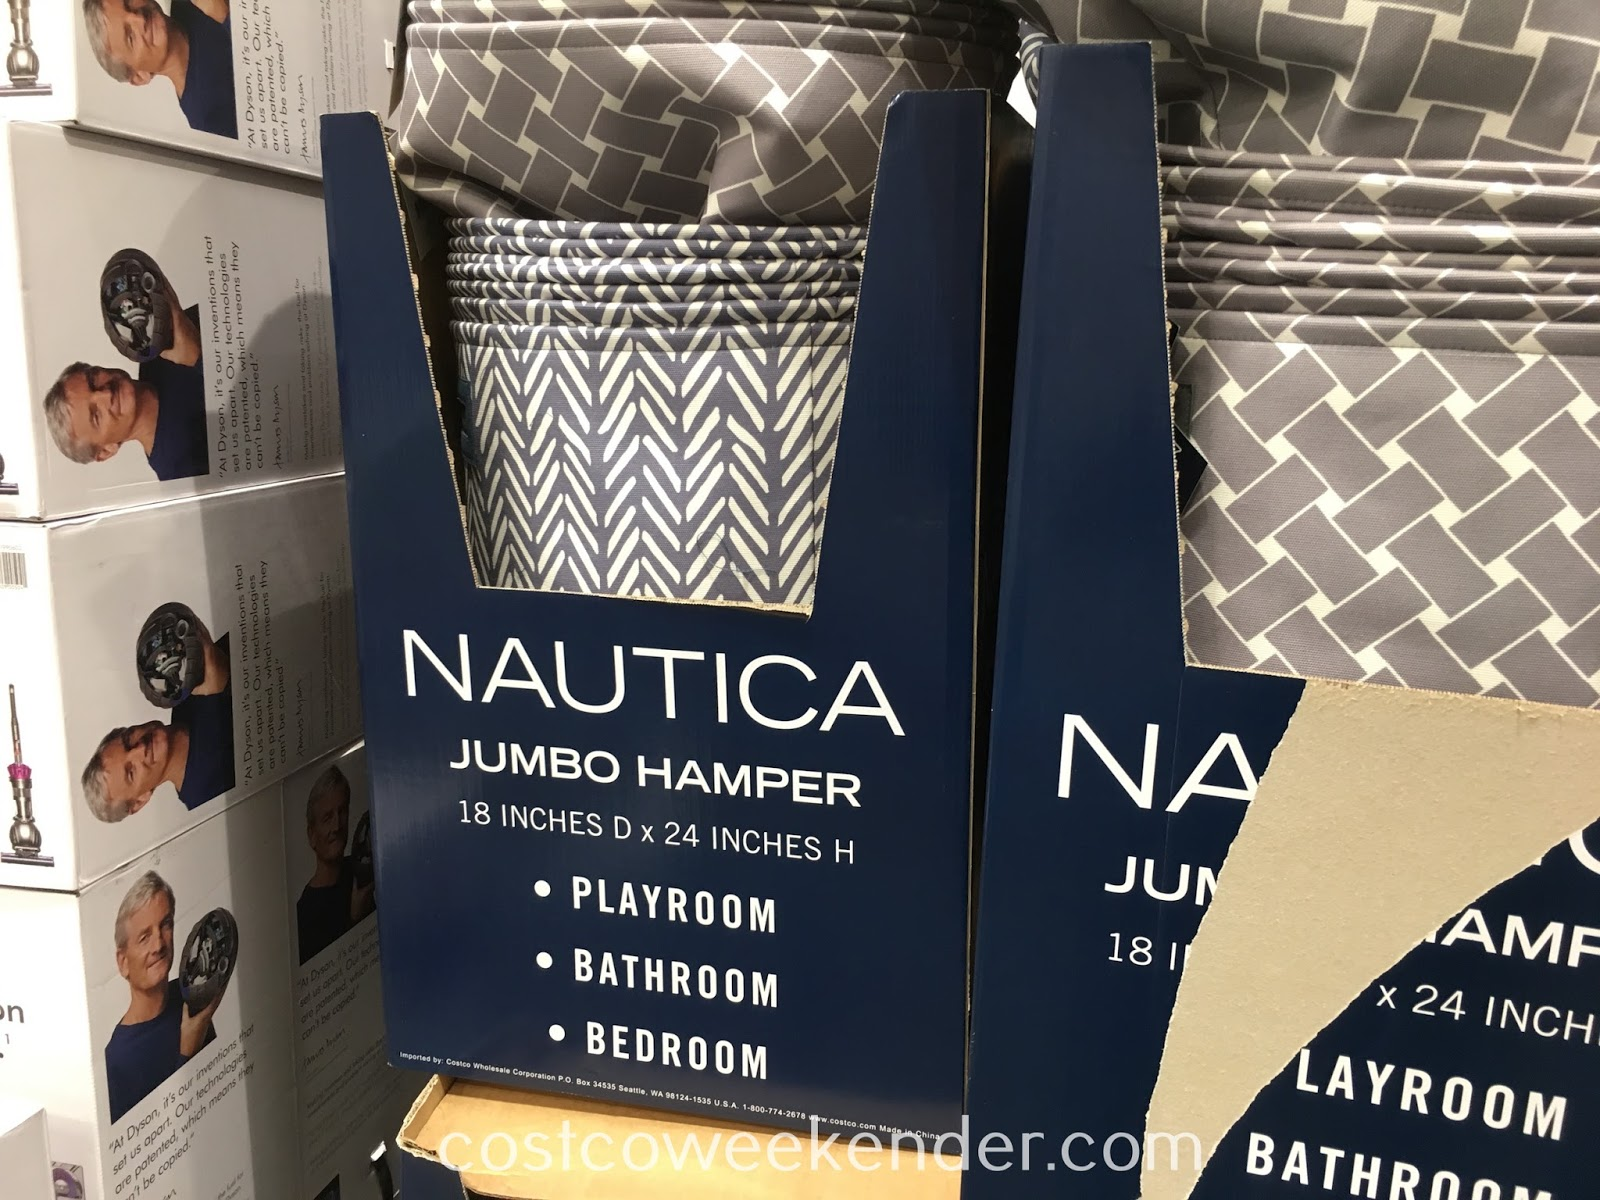 Costco 1096480 - Nautica Jumbo Hamper: great for any bathroom or bedroom